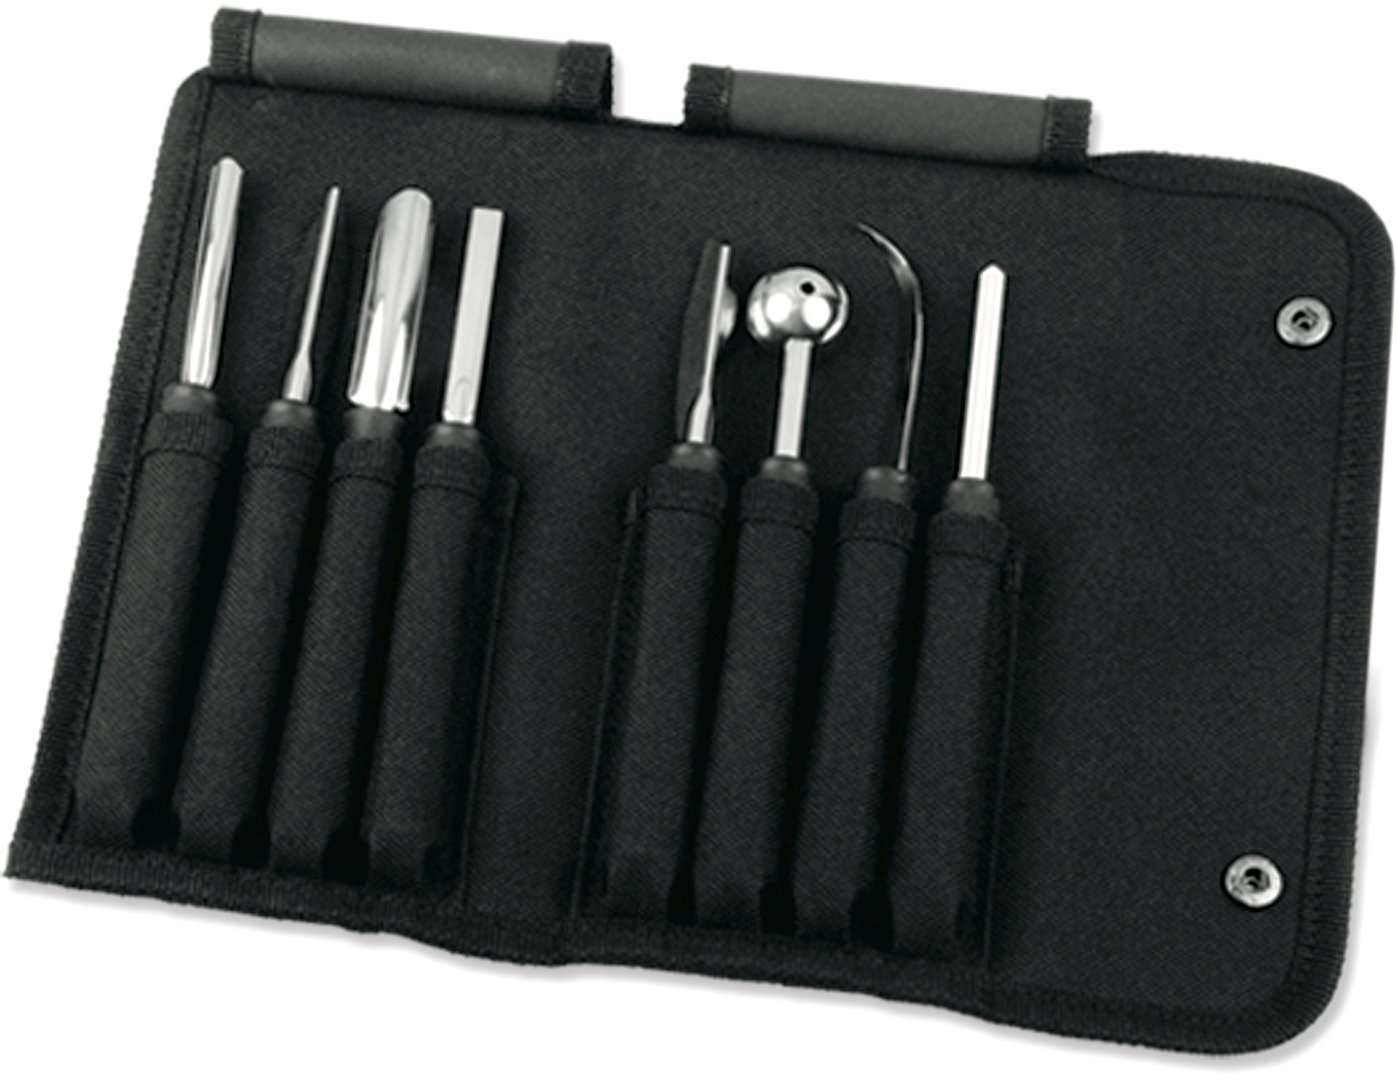 Mercer Culinary 9-Piece Carving Set